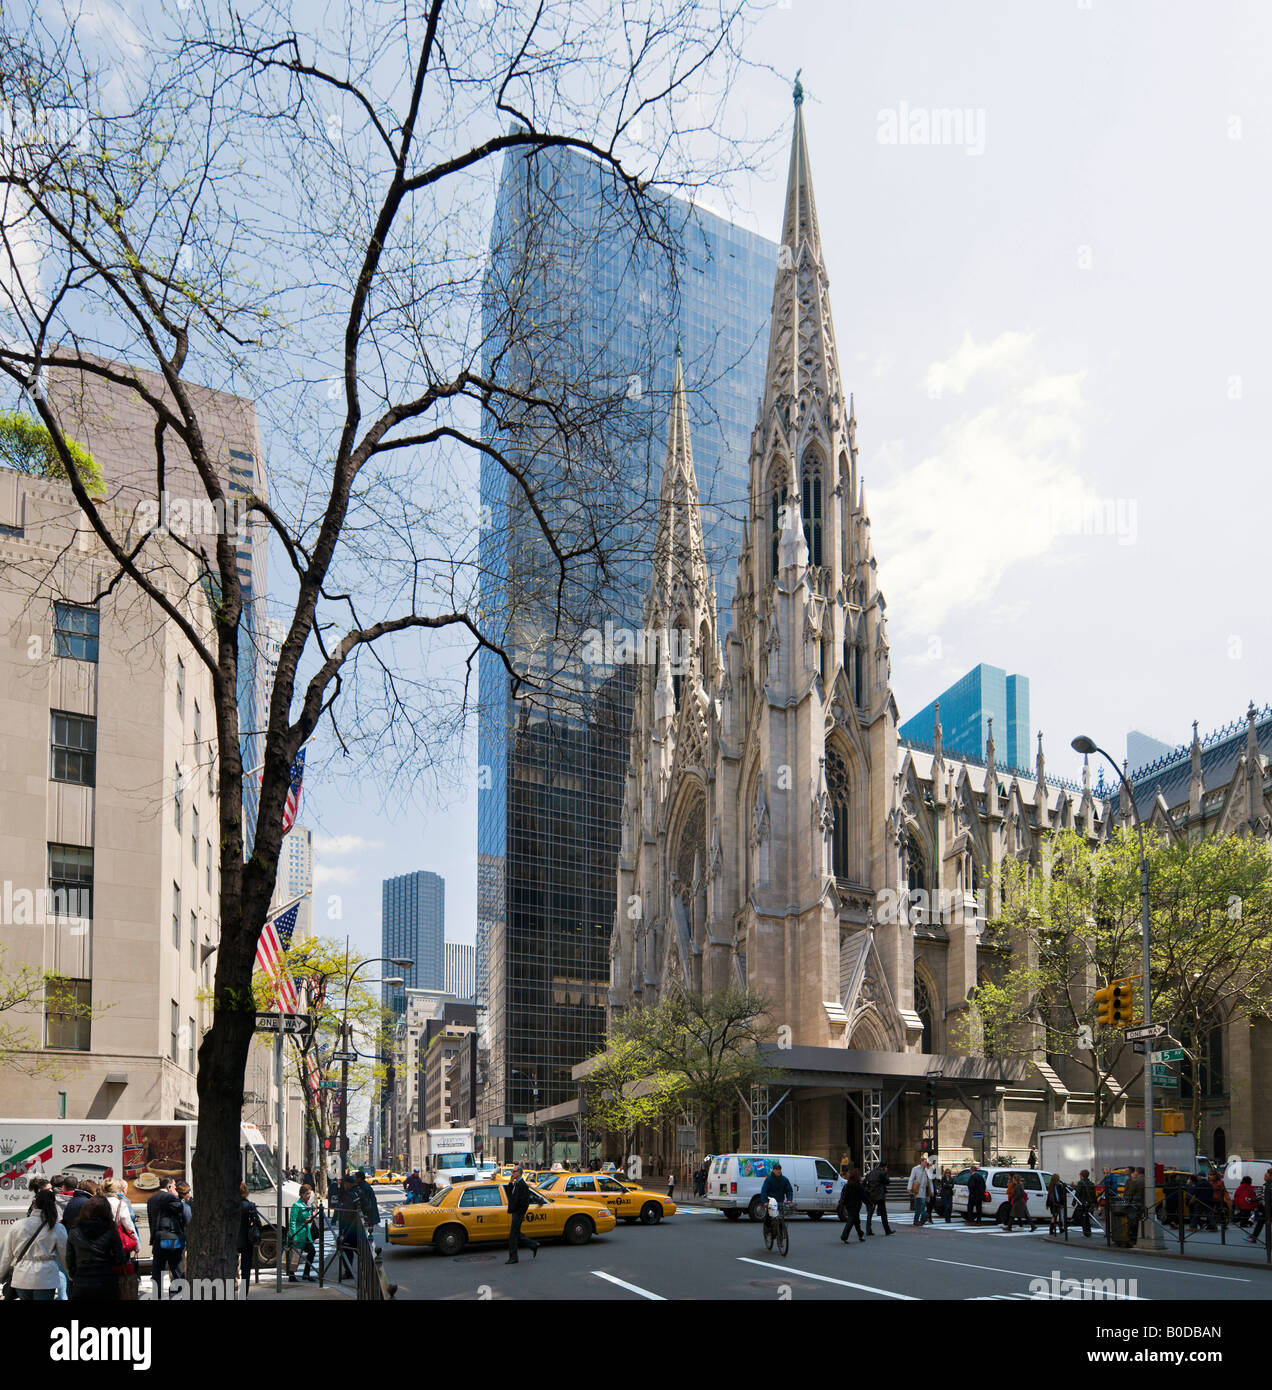 St Patrick S Cathedral And Olympic Tower 5th Avenue Midtown Stock Photo Alamy